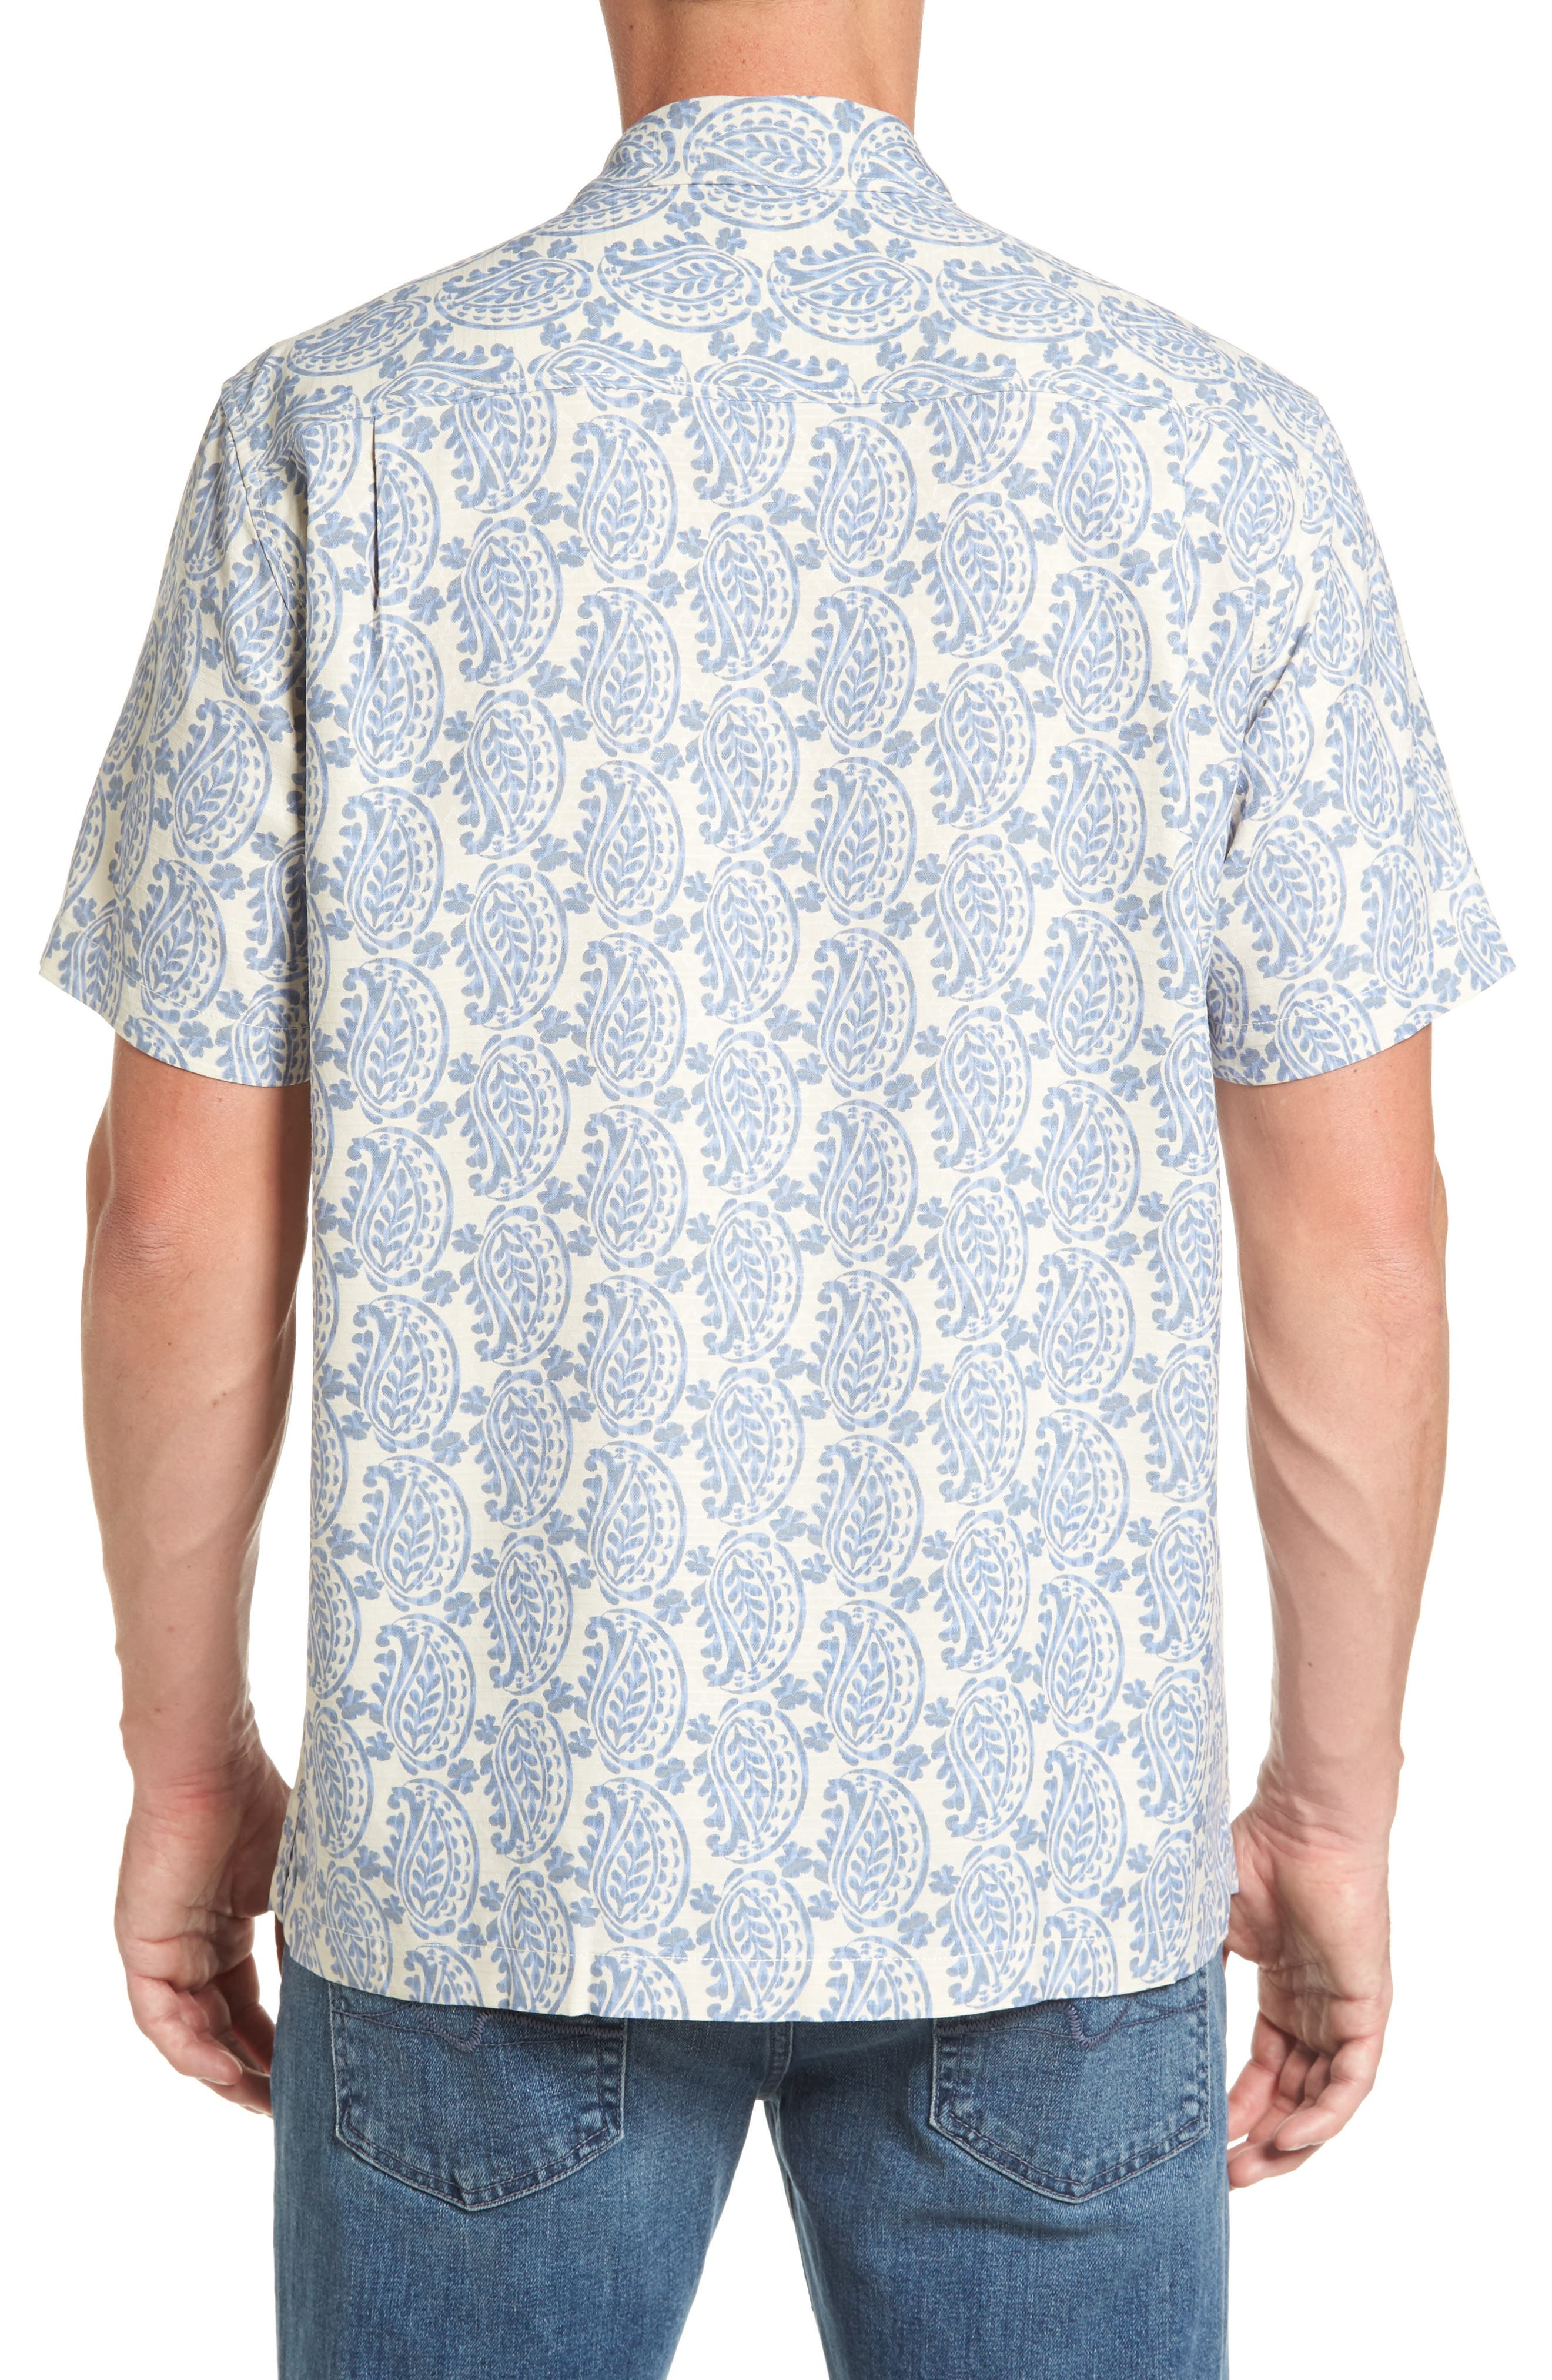 Paisley Days Woven Shirt,                             Alternate thumbnail 2, color,                             100